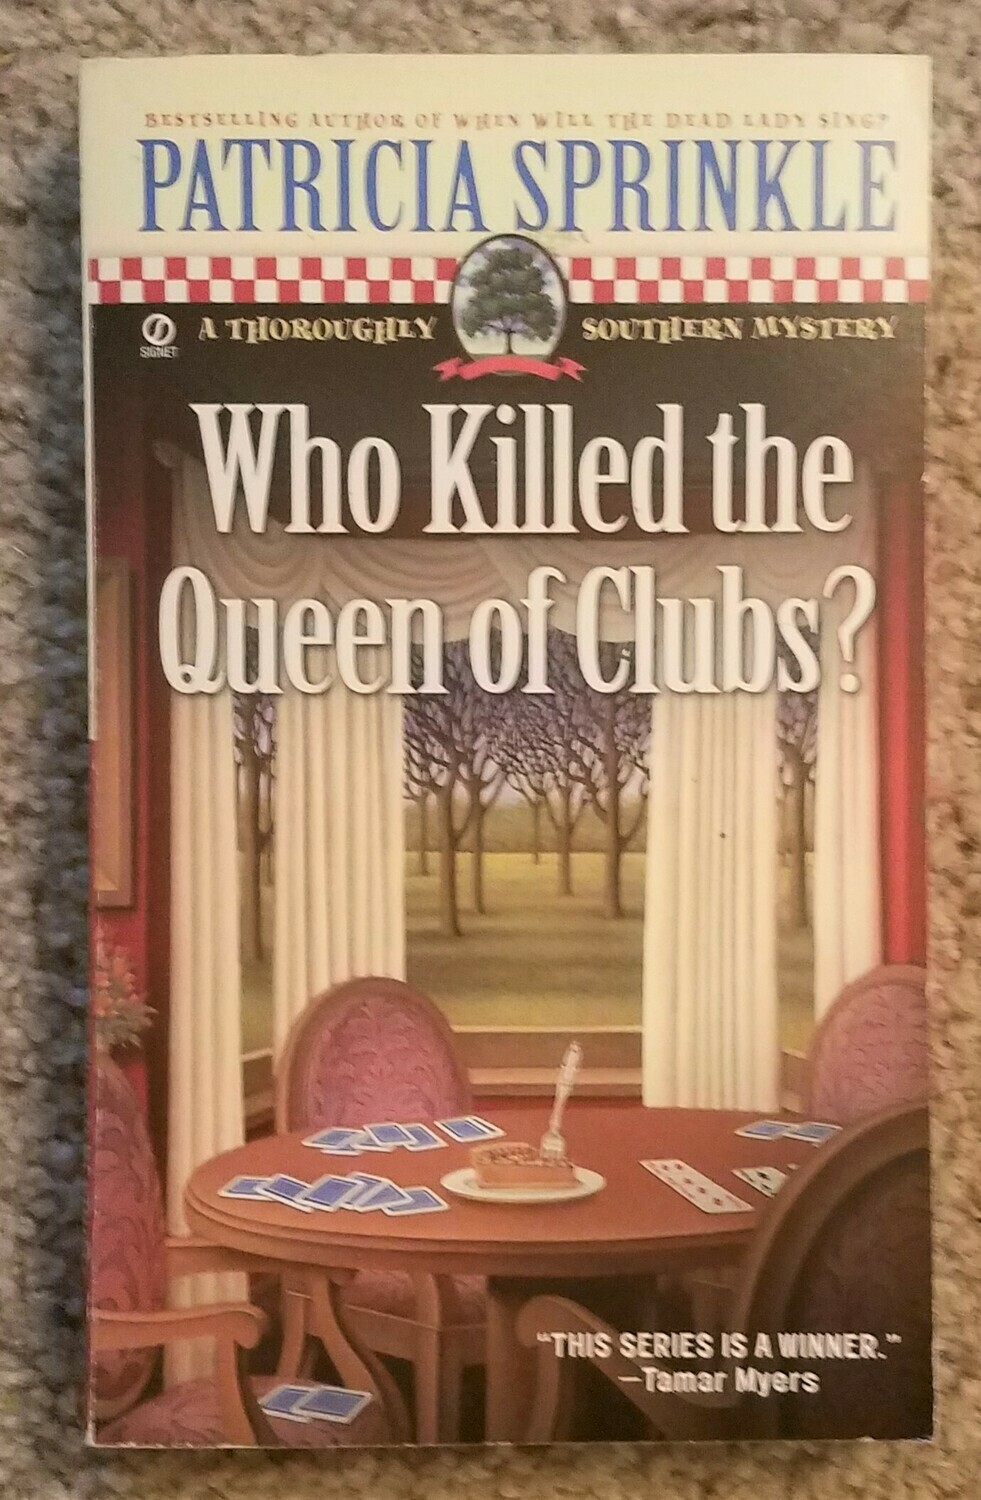 Who Killed the Queen of Clubs? by Patricia Sprinkle